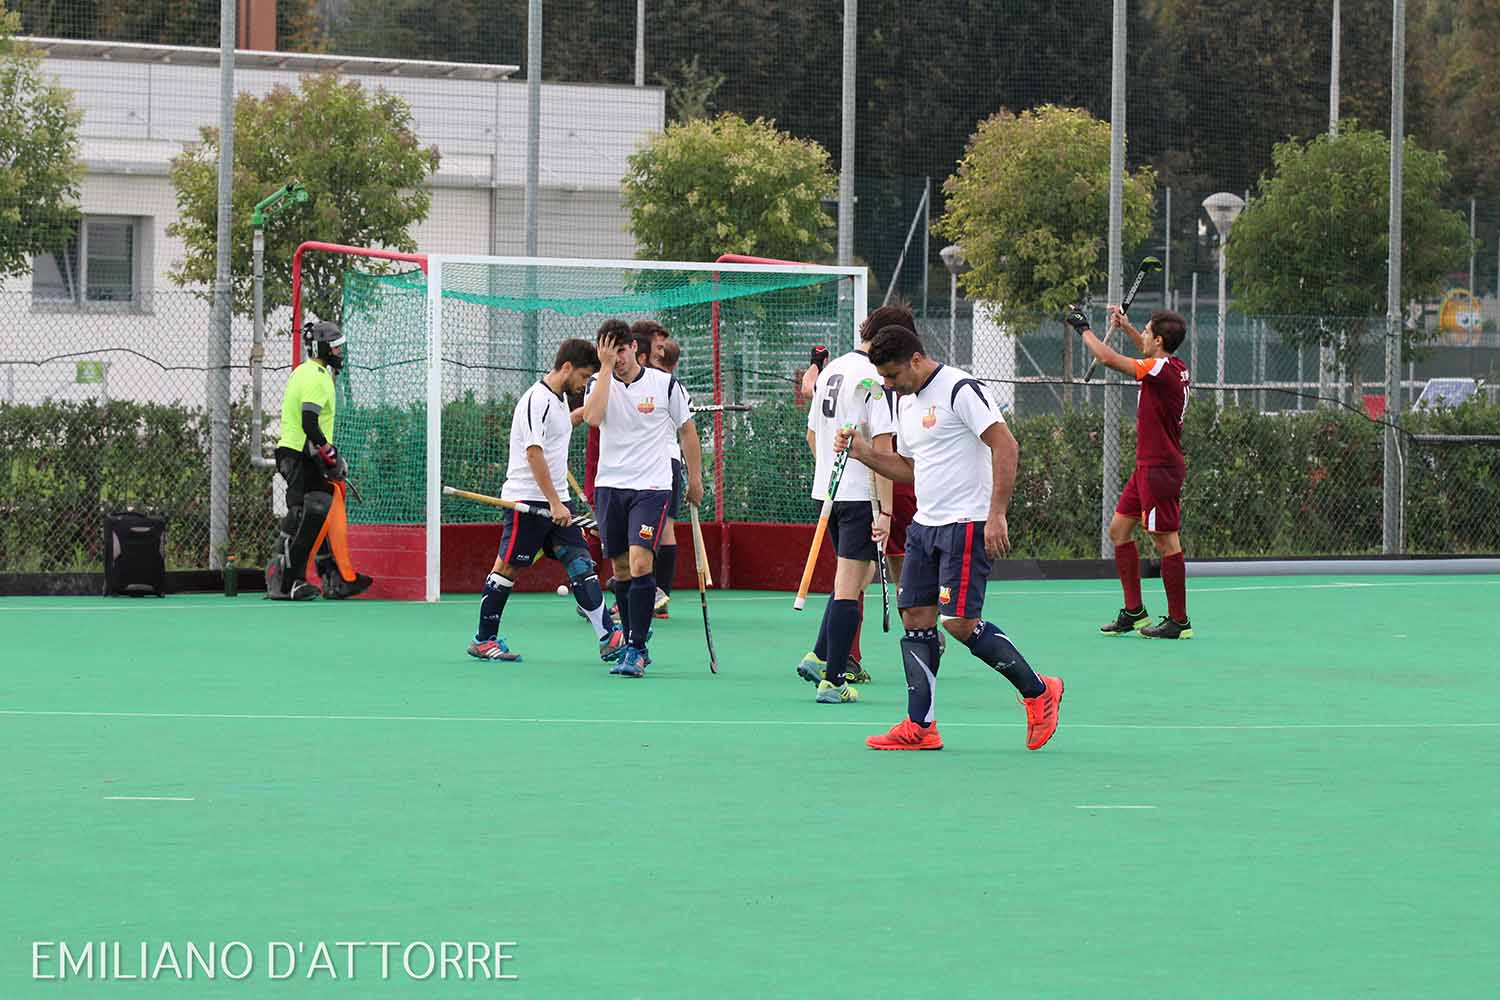 Low Hockey Club Roma Vs Hockey Team Bologna 6 1(1zd) (Serie A1) 3.11.2019